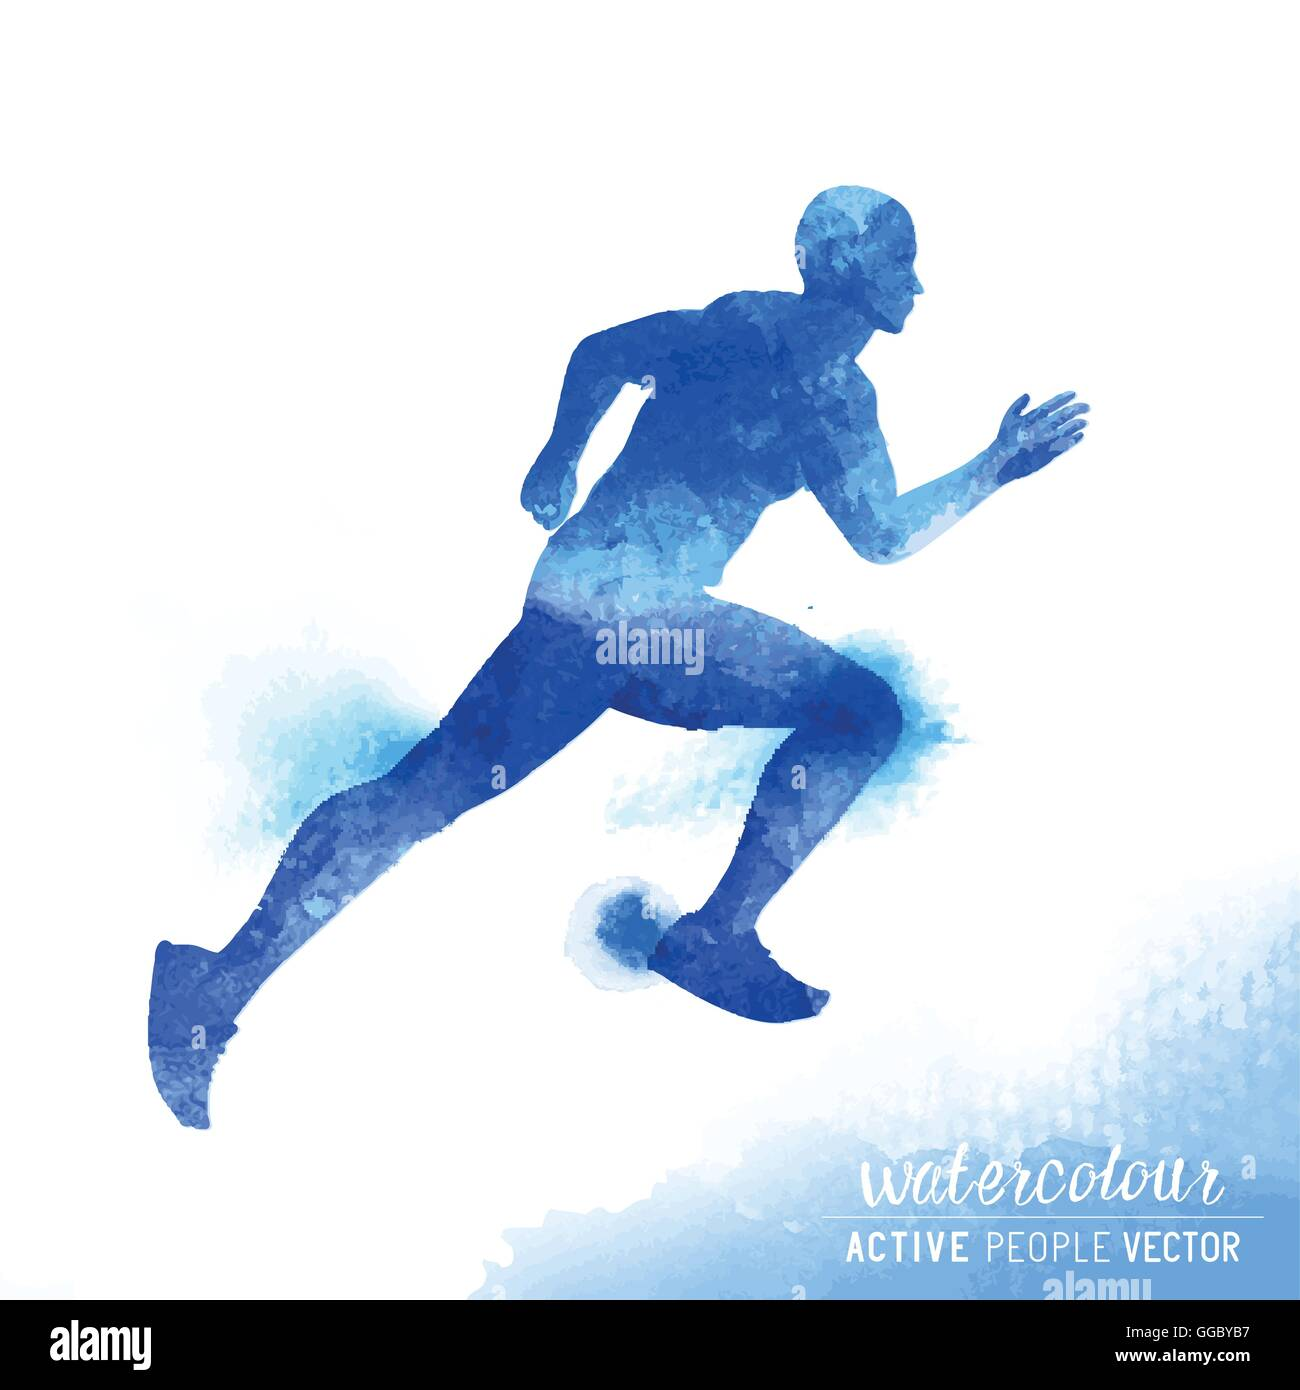 A young active man running and training- Watercolour vector illustration. Stock Vector